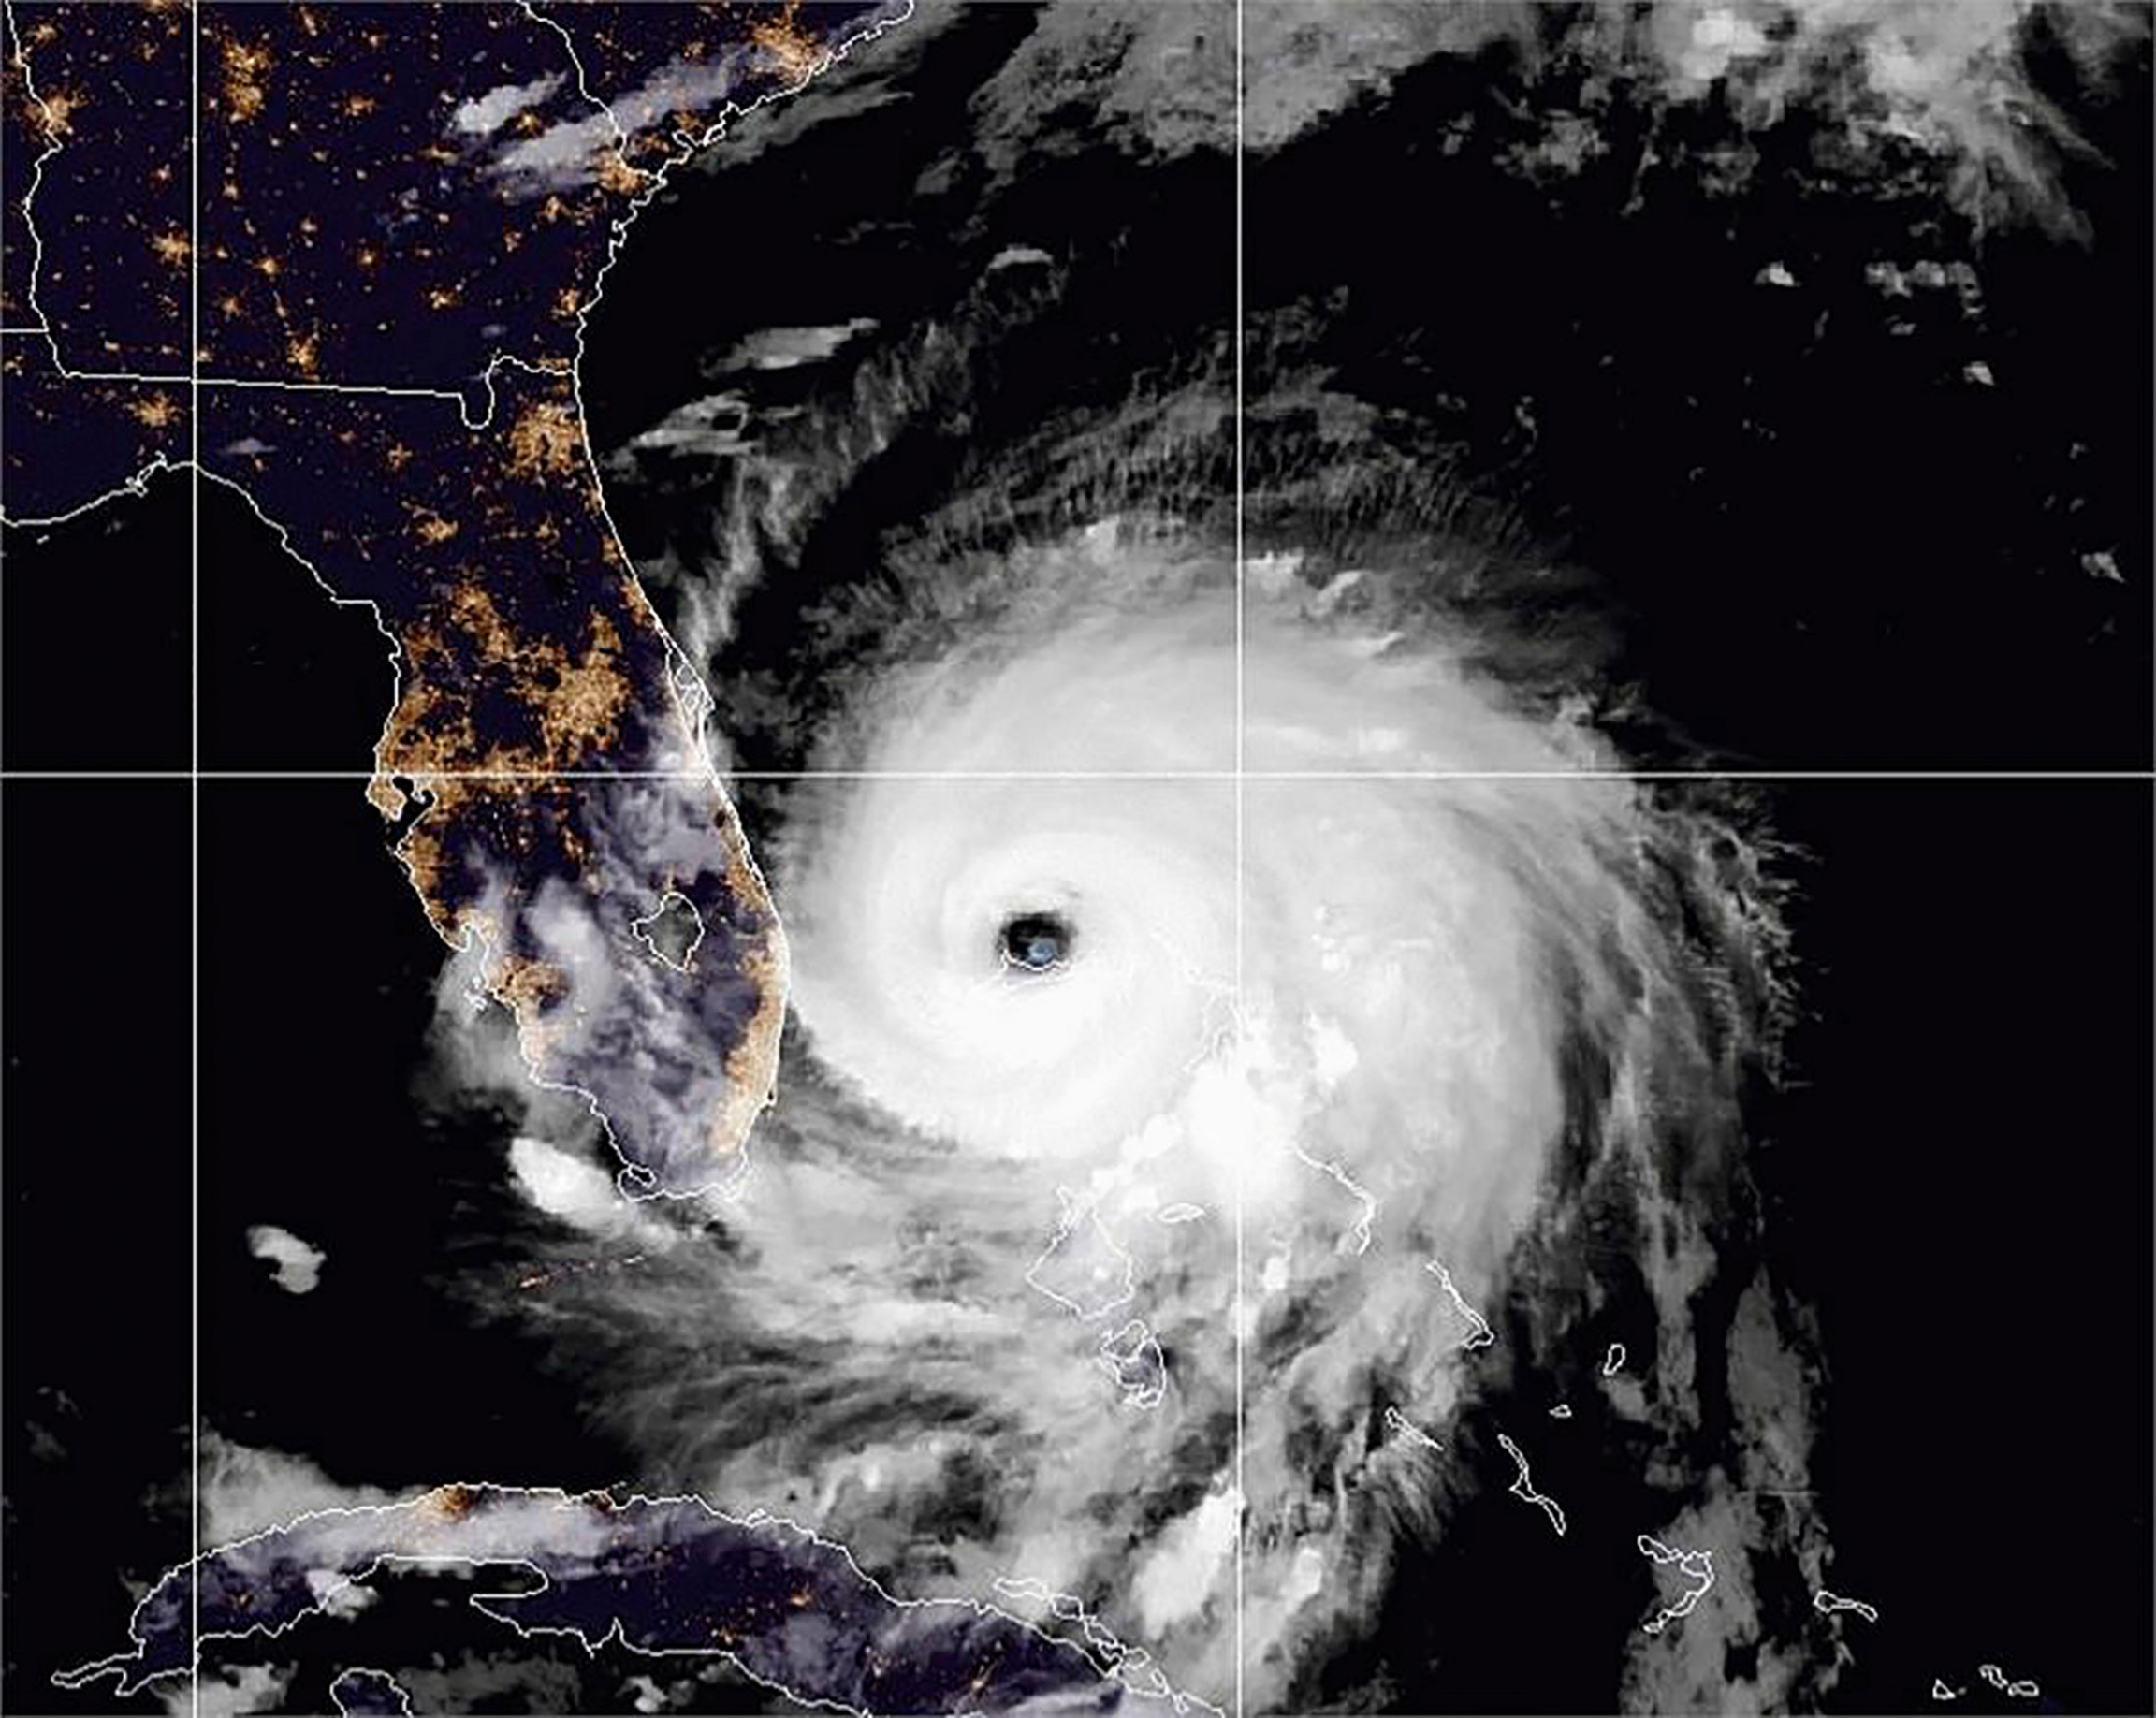 A satellite image shows the outline of Florida with the large spiral of Hurricane Dorian adjacent to the east coast.